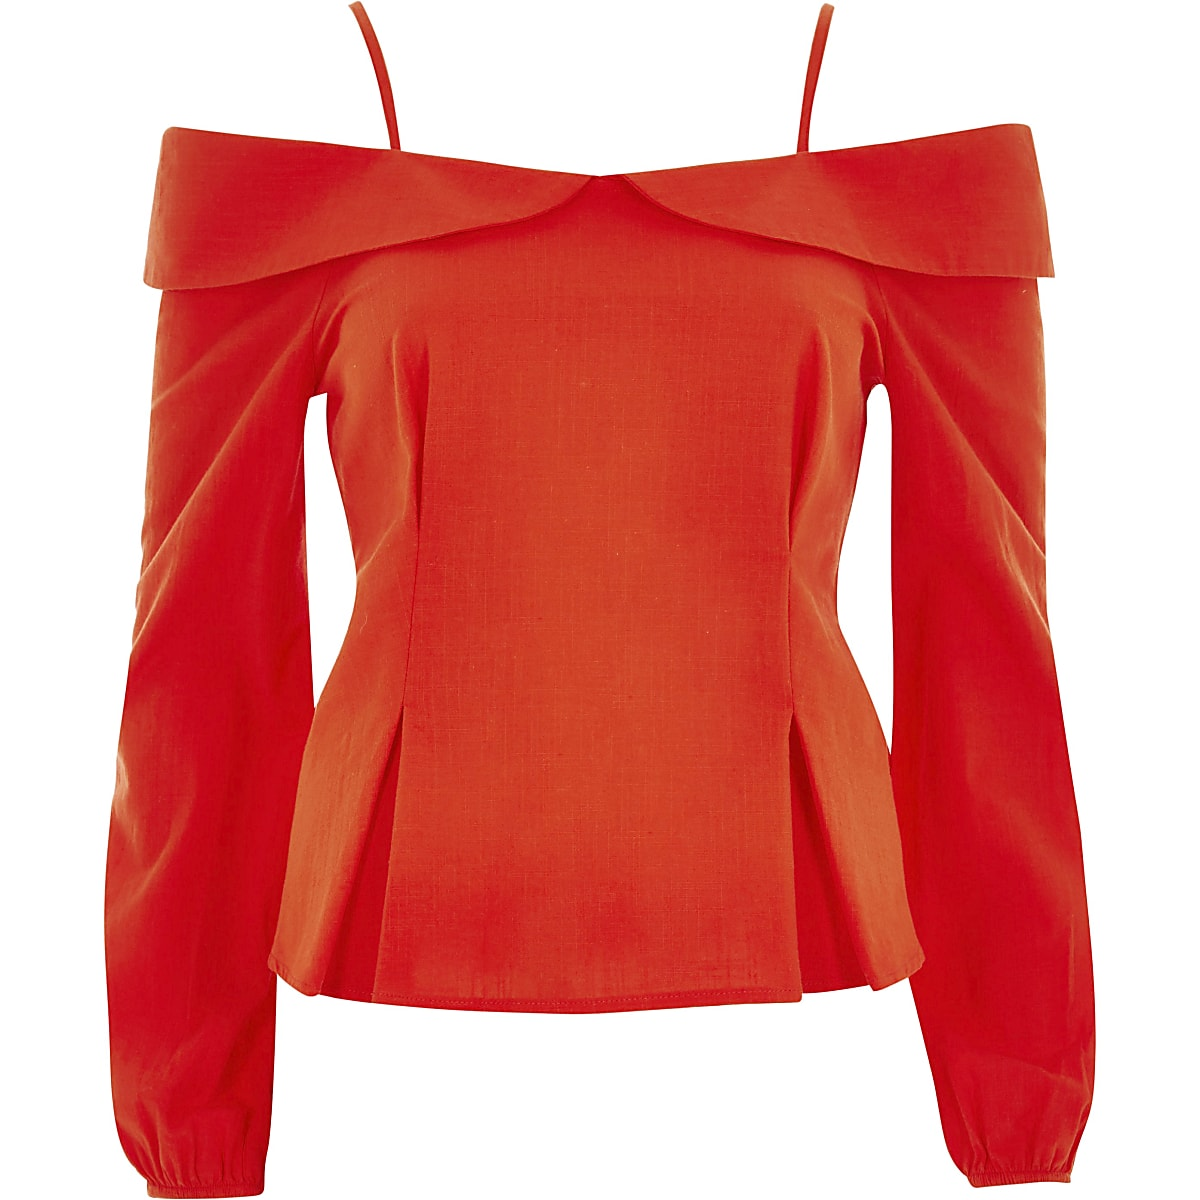 8bd93686b48b84 Red cold shoulder bow back top - Blouses - Tops - women